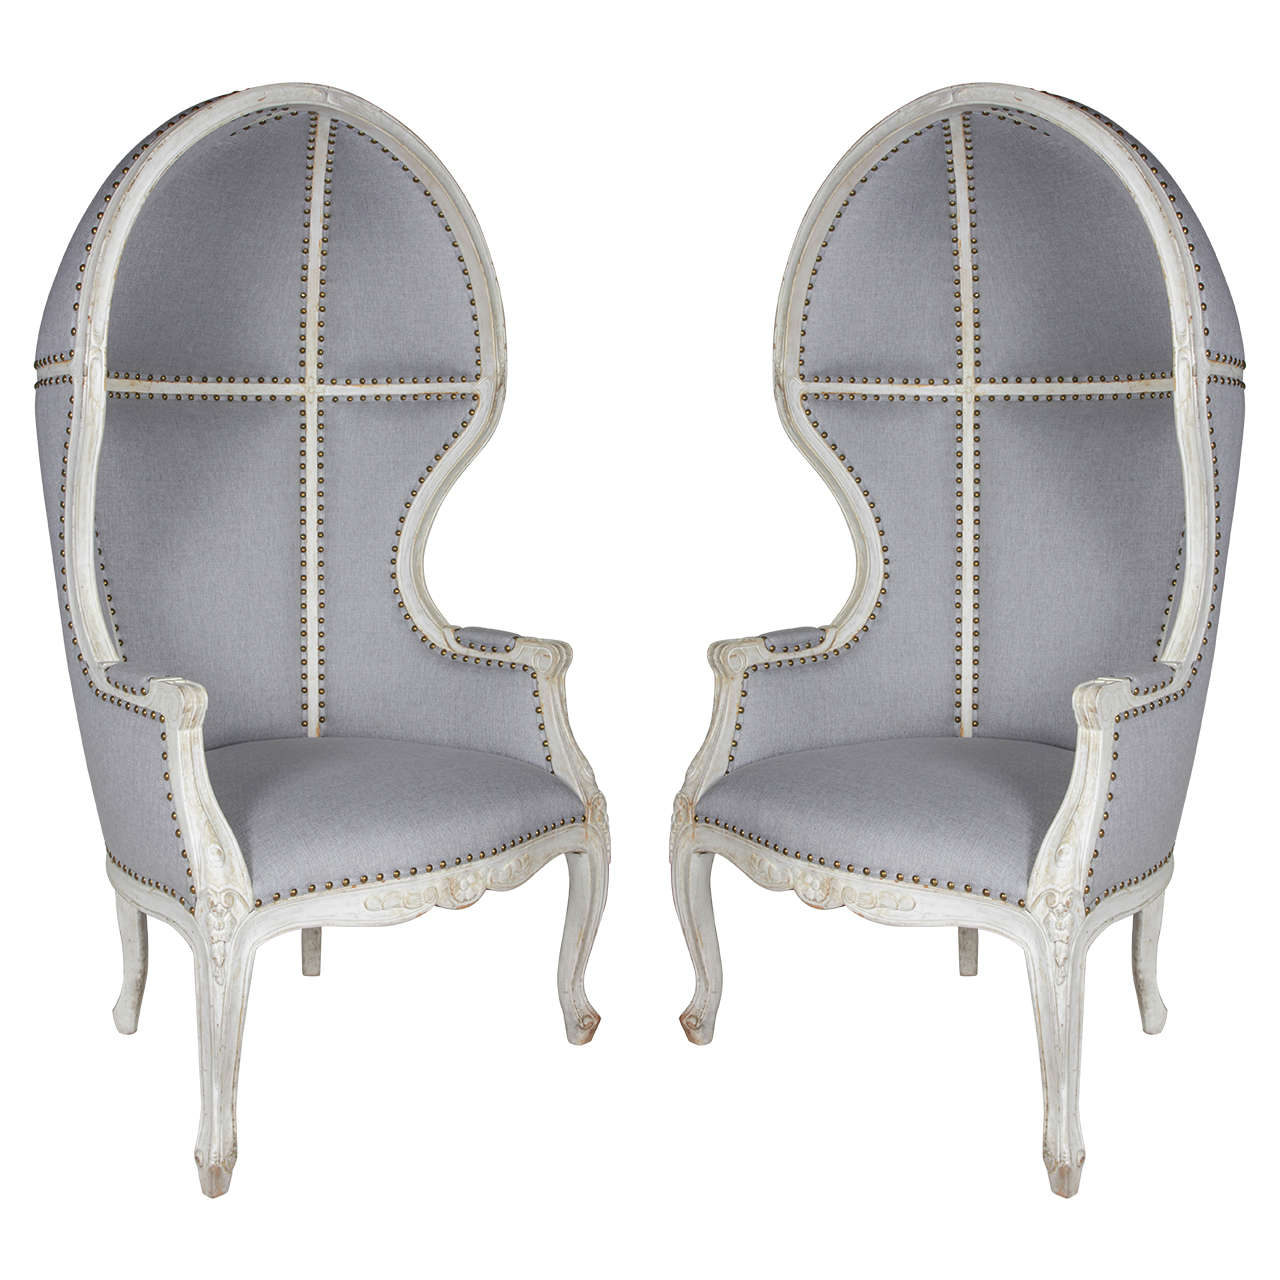 Hooded Chair Pair Of Gustavian Style Canopy Chairs With Elegant Hooded